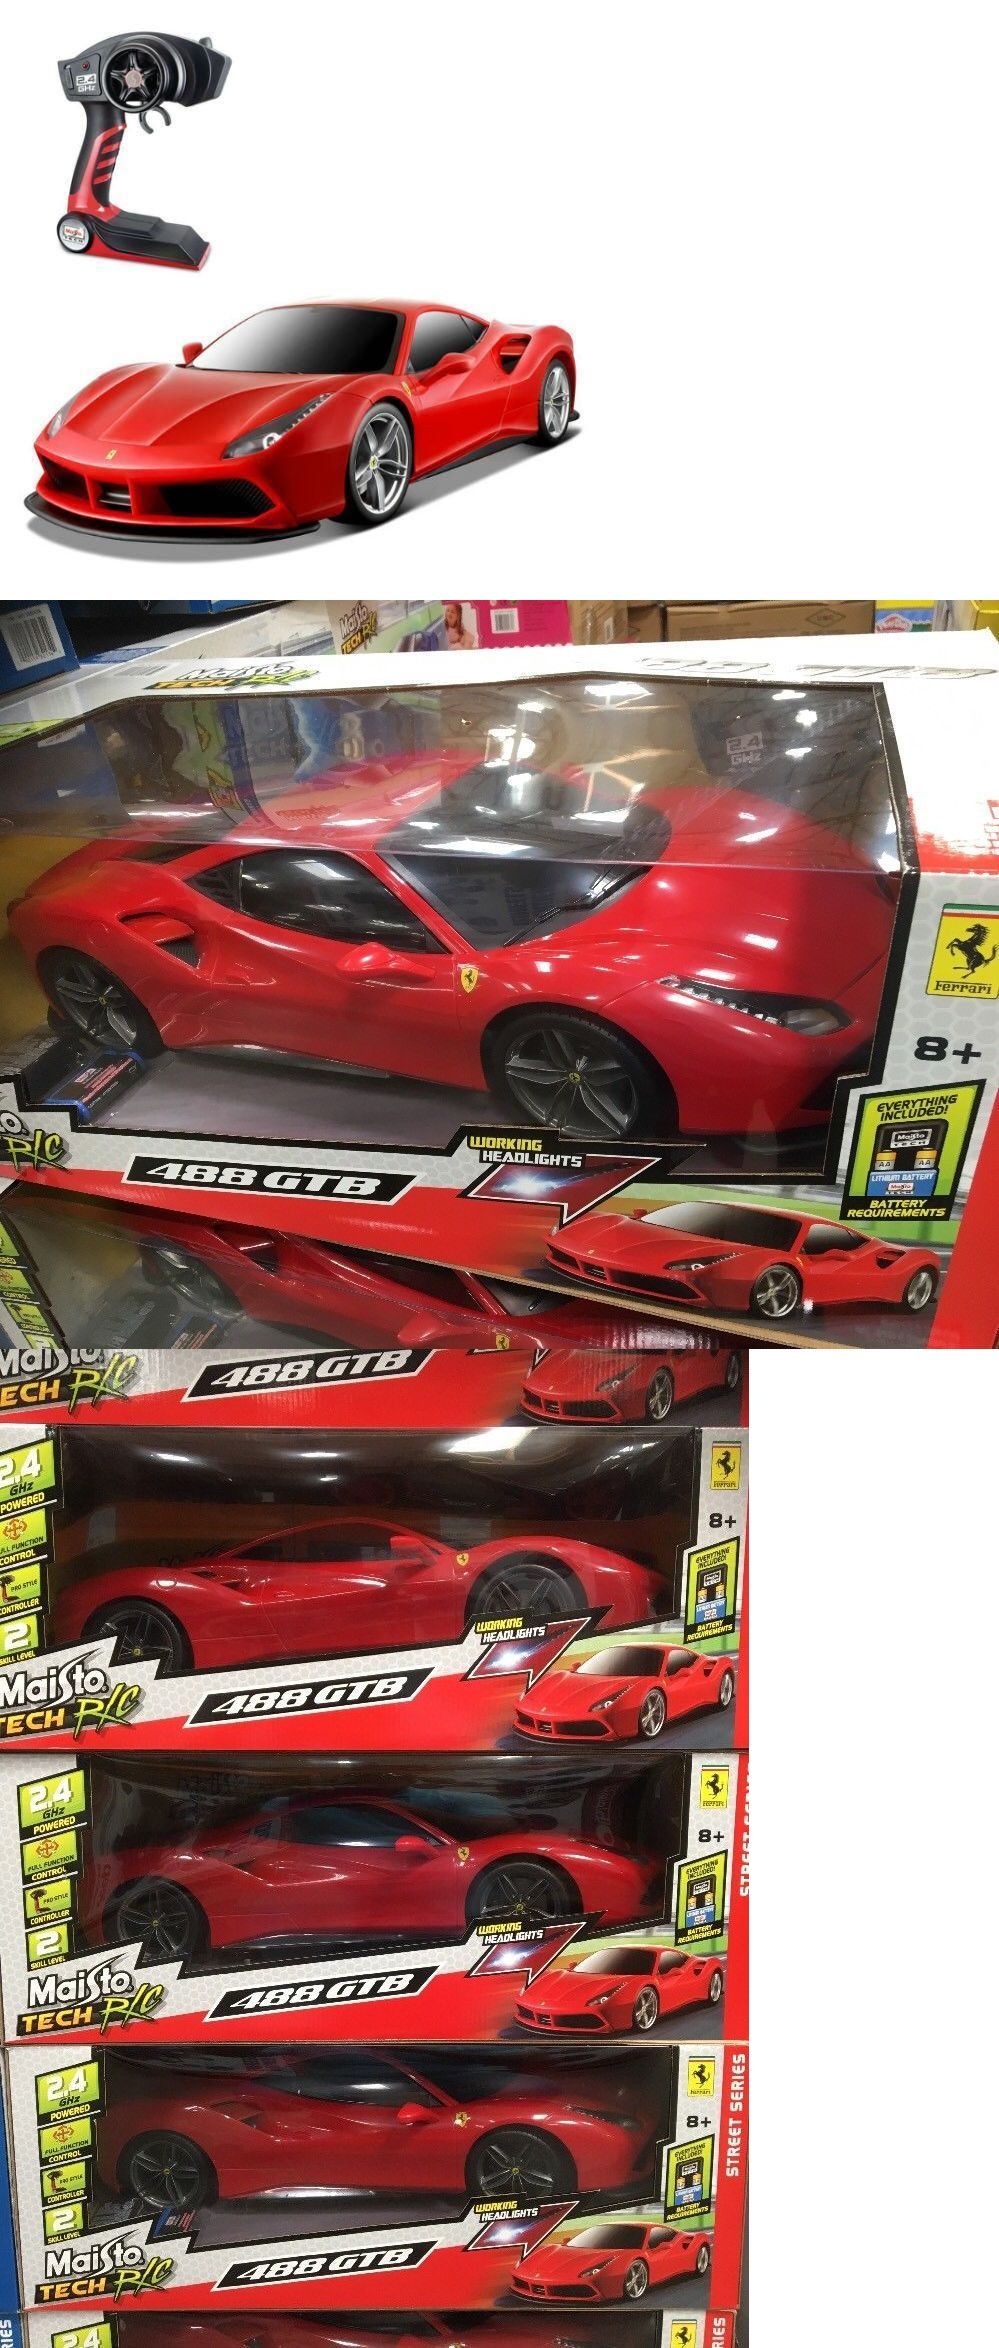 Cars Trucks And Motorcycles 182183 1 6 Scale Ferrari 488 Gtb Maisto Special Remote Control Rc Car Huge 22 Long New Buy It N Cars Trucks Ferrari 488 Rc Cars